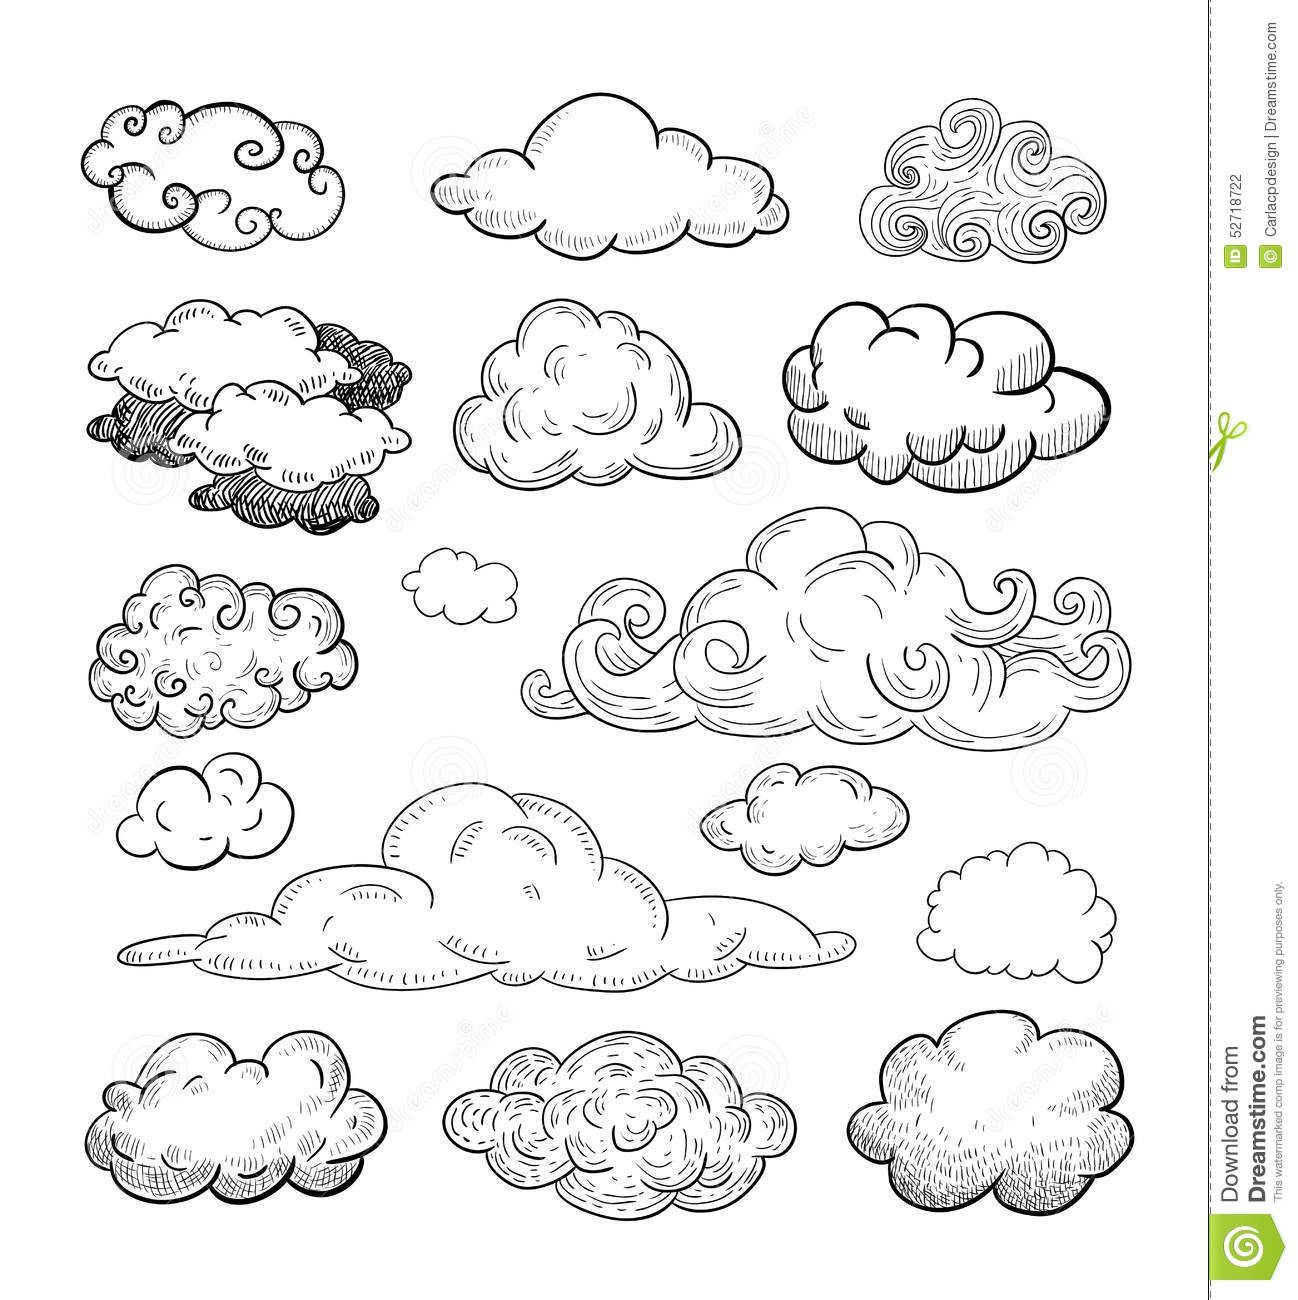 Line Drawing Clouds : Doodle collection of hand drawn vector clouds stock